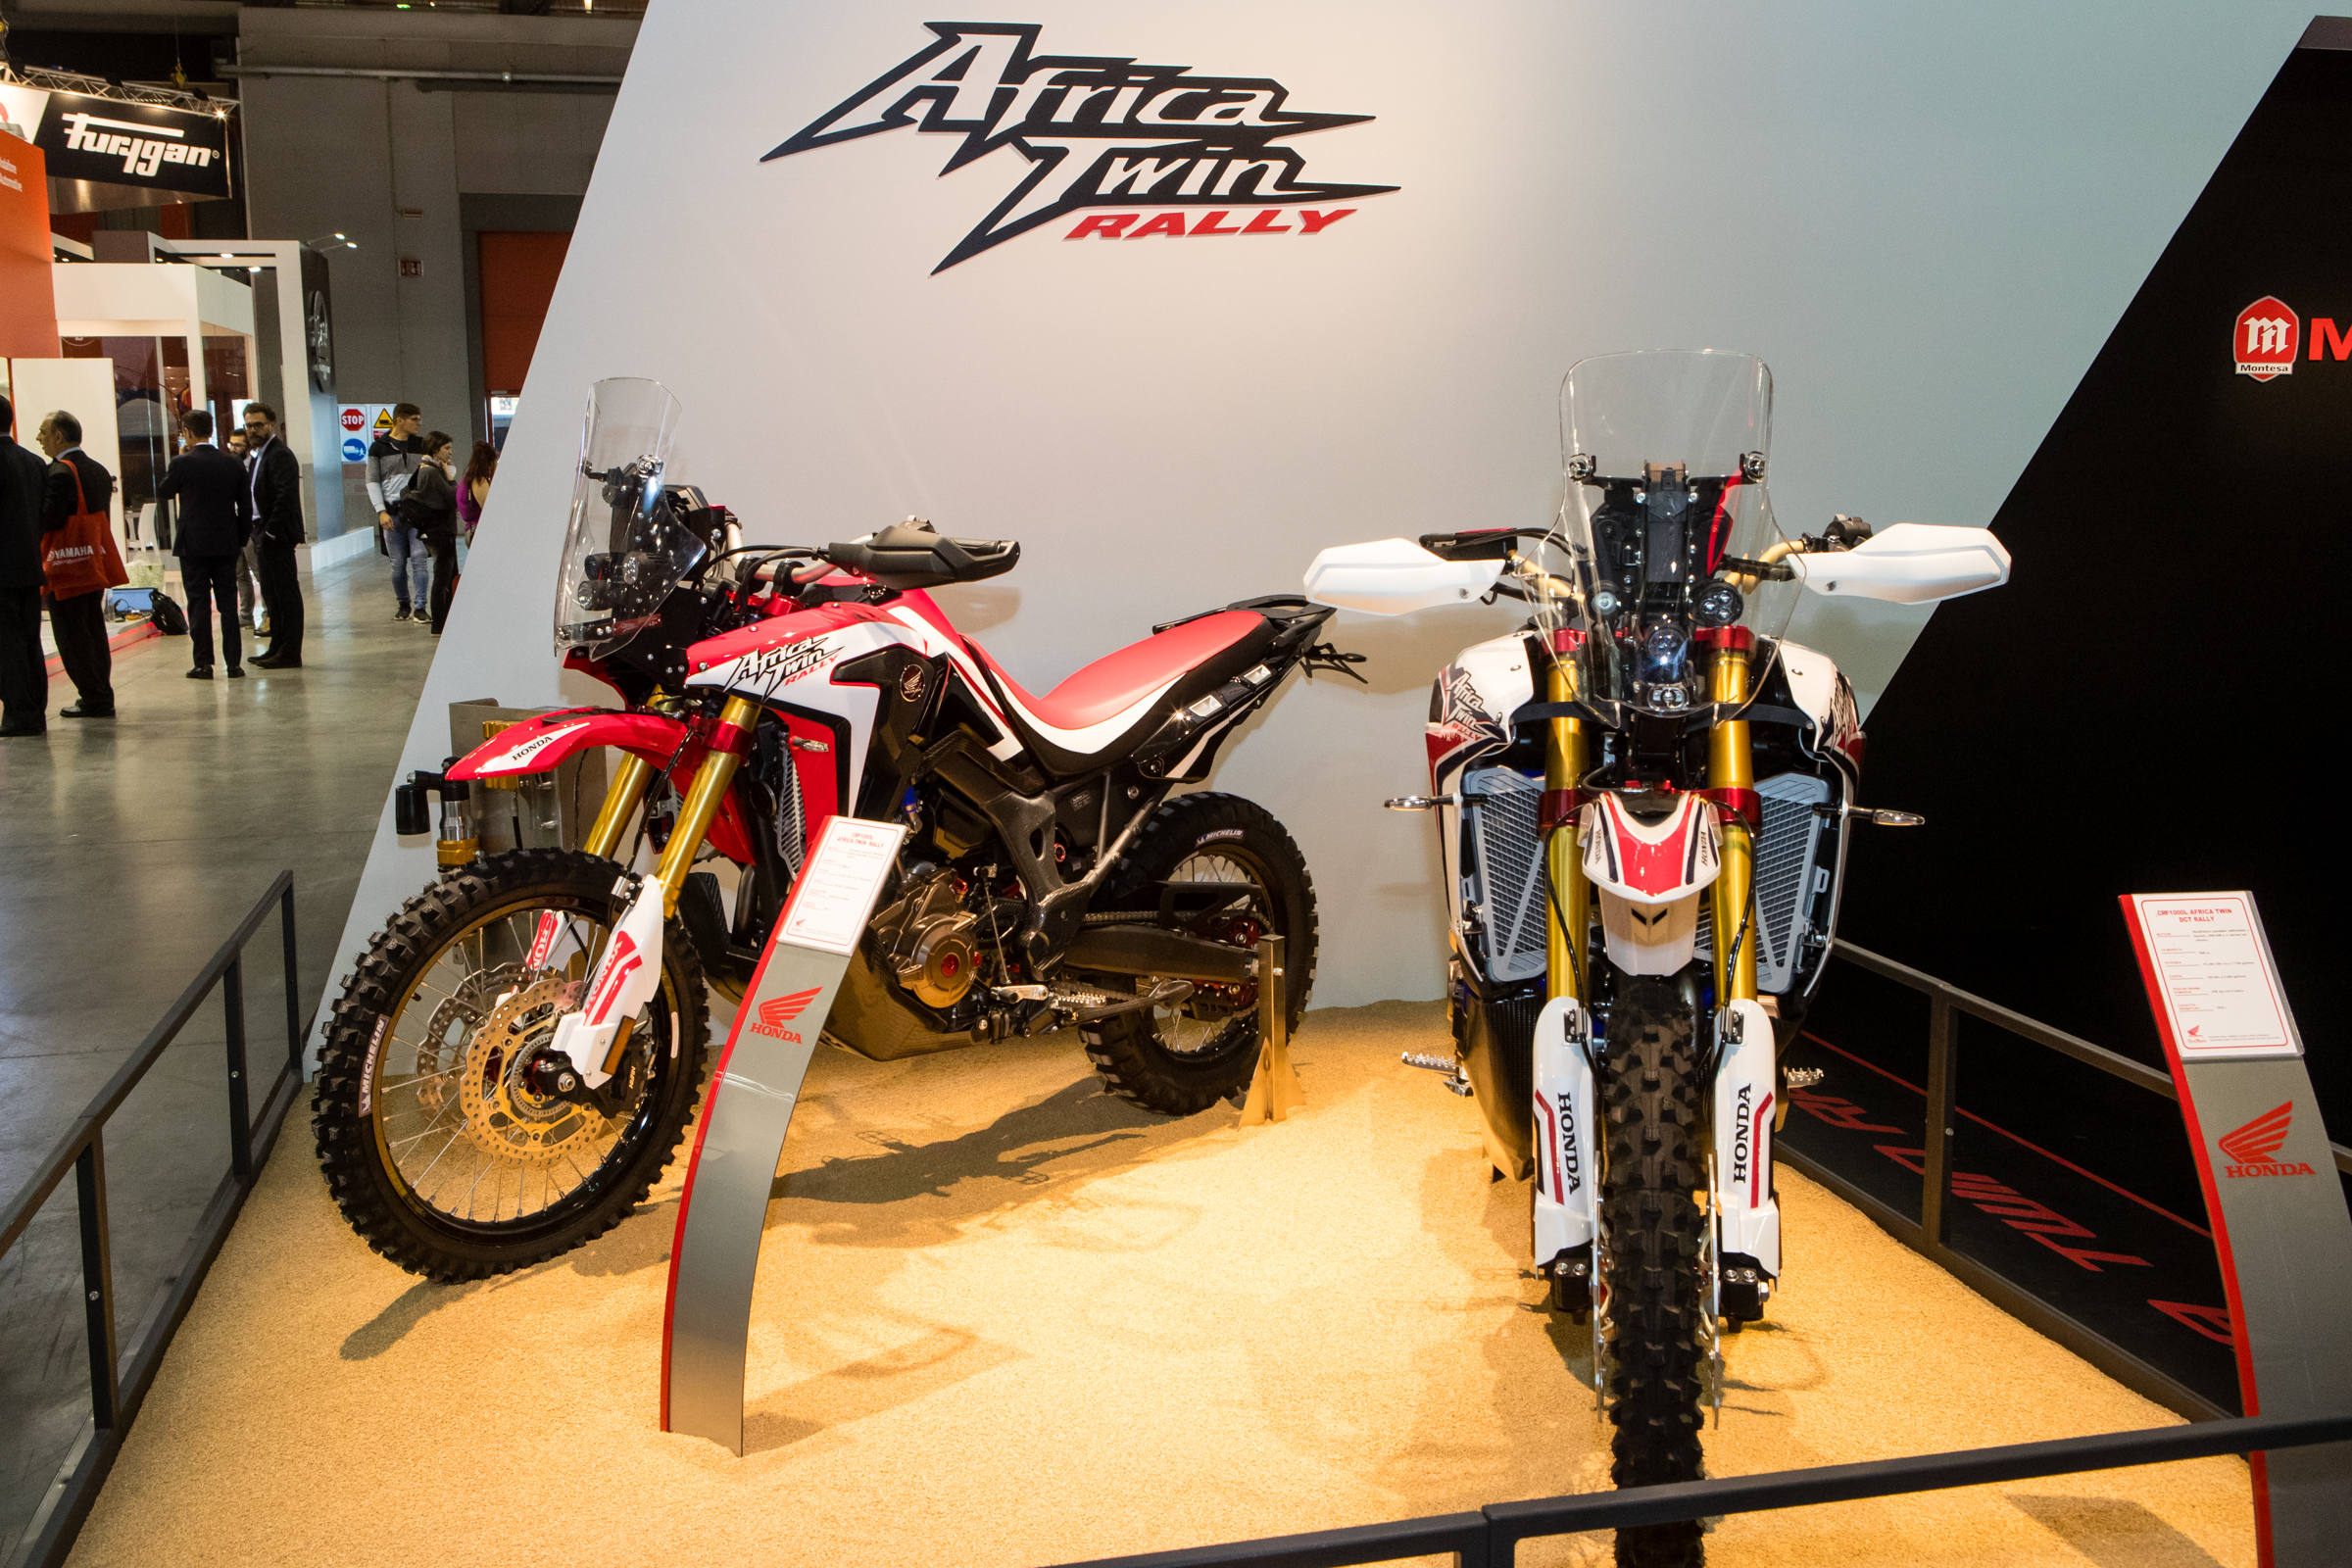 Honda's Italian importer, RedMoto, has some serious influence. They're allowed to modify their incoming bikes, adding a CRF450R and CRF250R enduro and Supermoto models to their range and even this super unique CRF1000L Africa Twin Rally model.